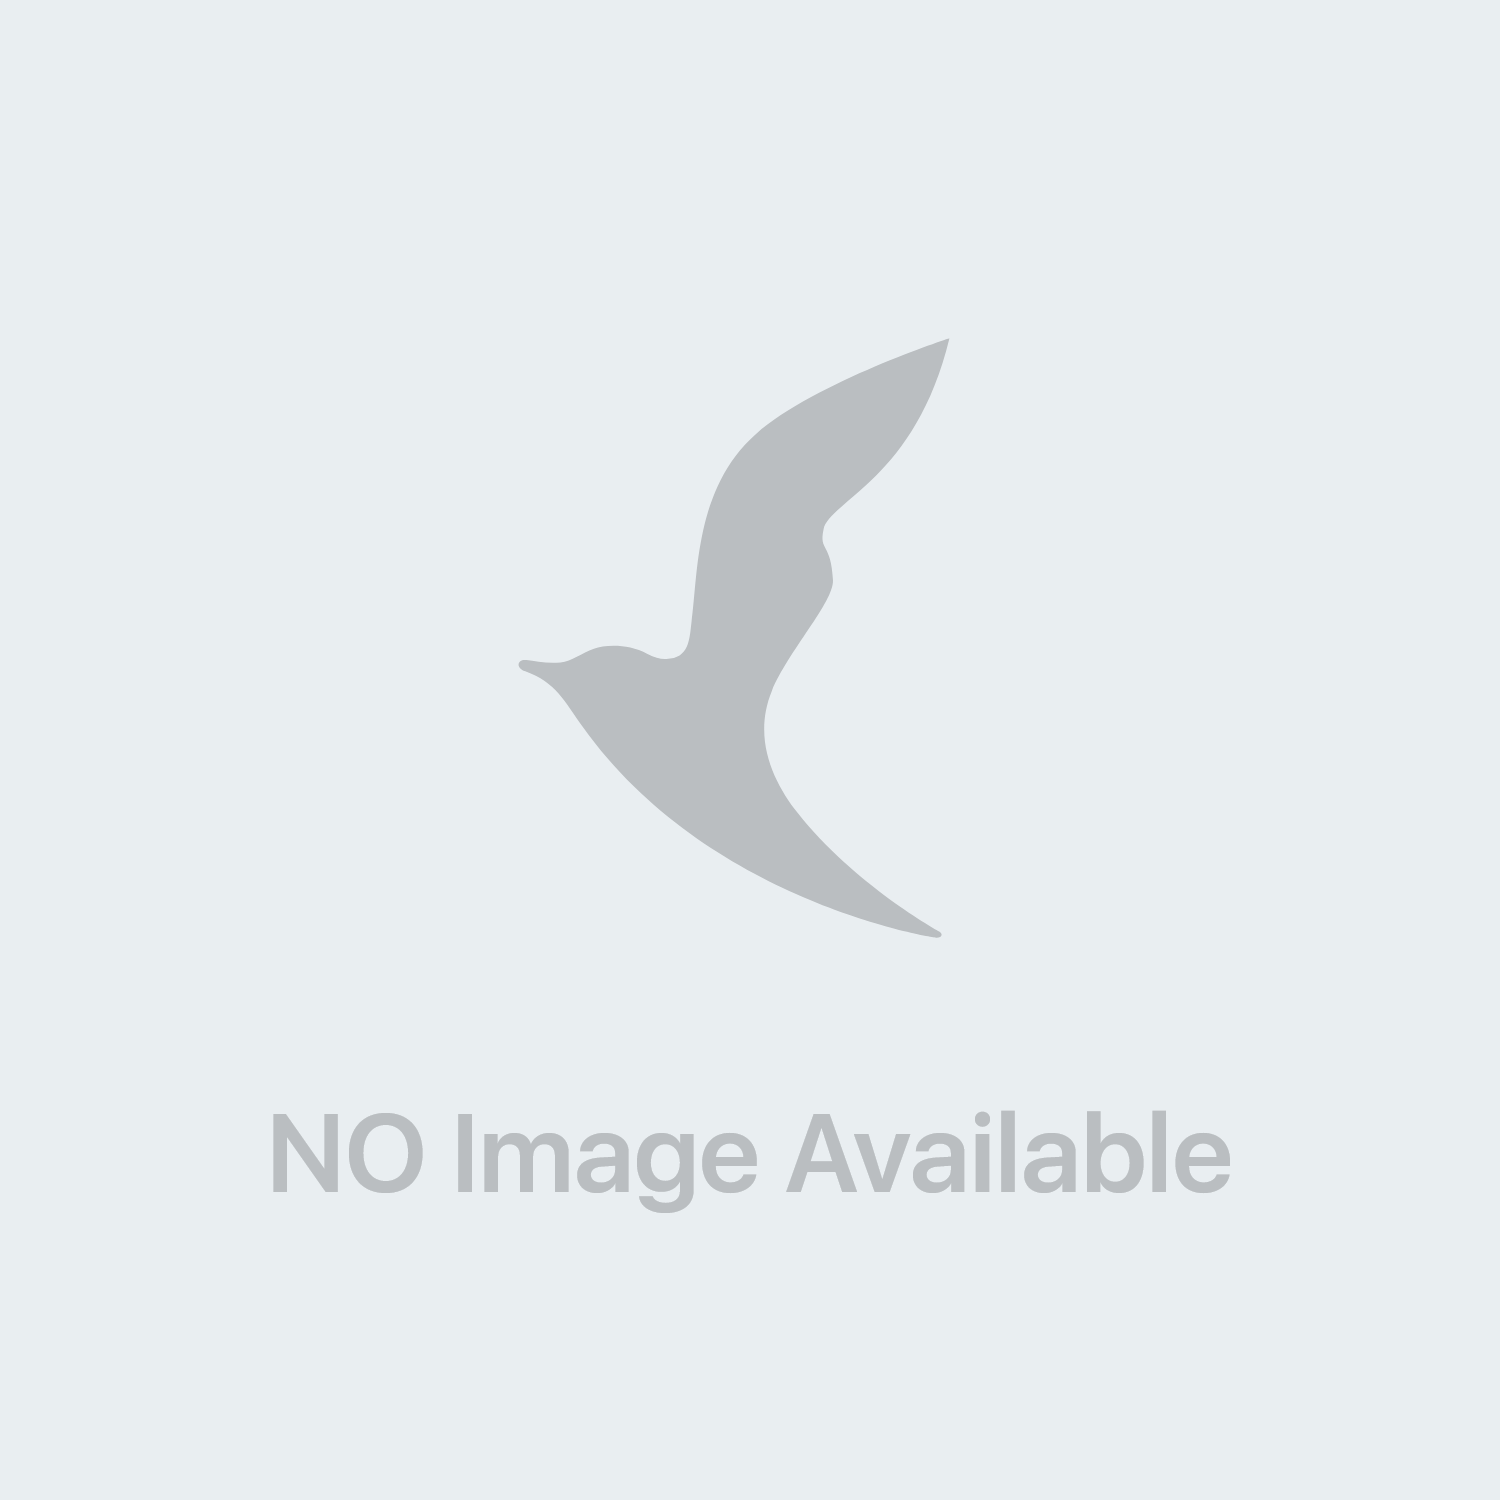 NAMED MENOFLAVON MENOPAUSA N 40 mg 60 Compresse